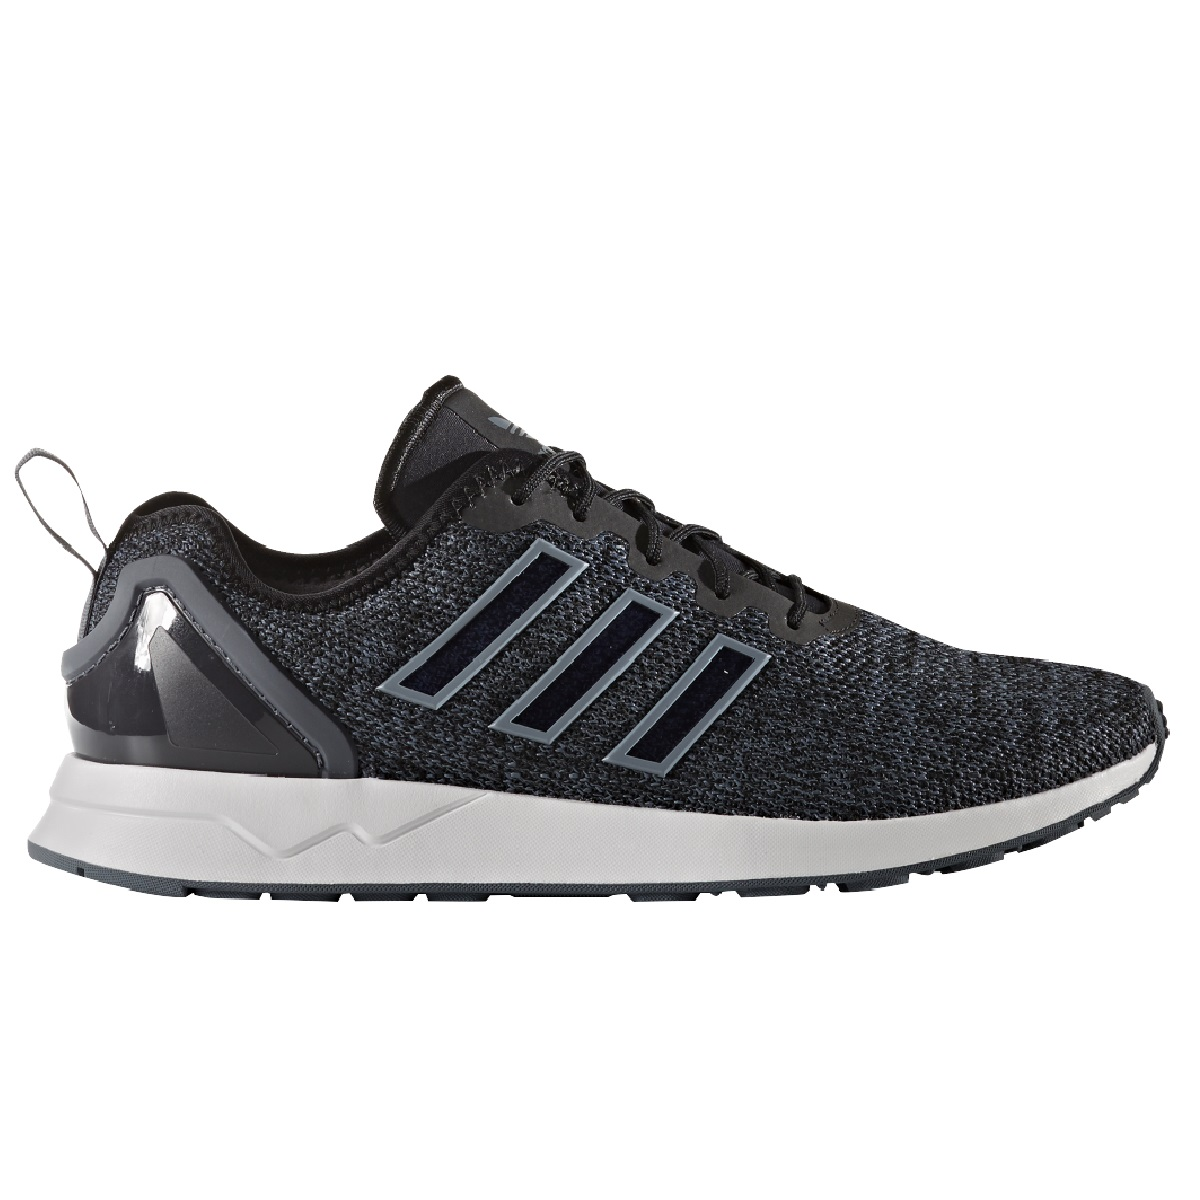 adidas originals herren zx flux sneakers schwarz